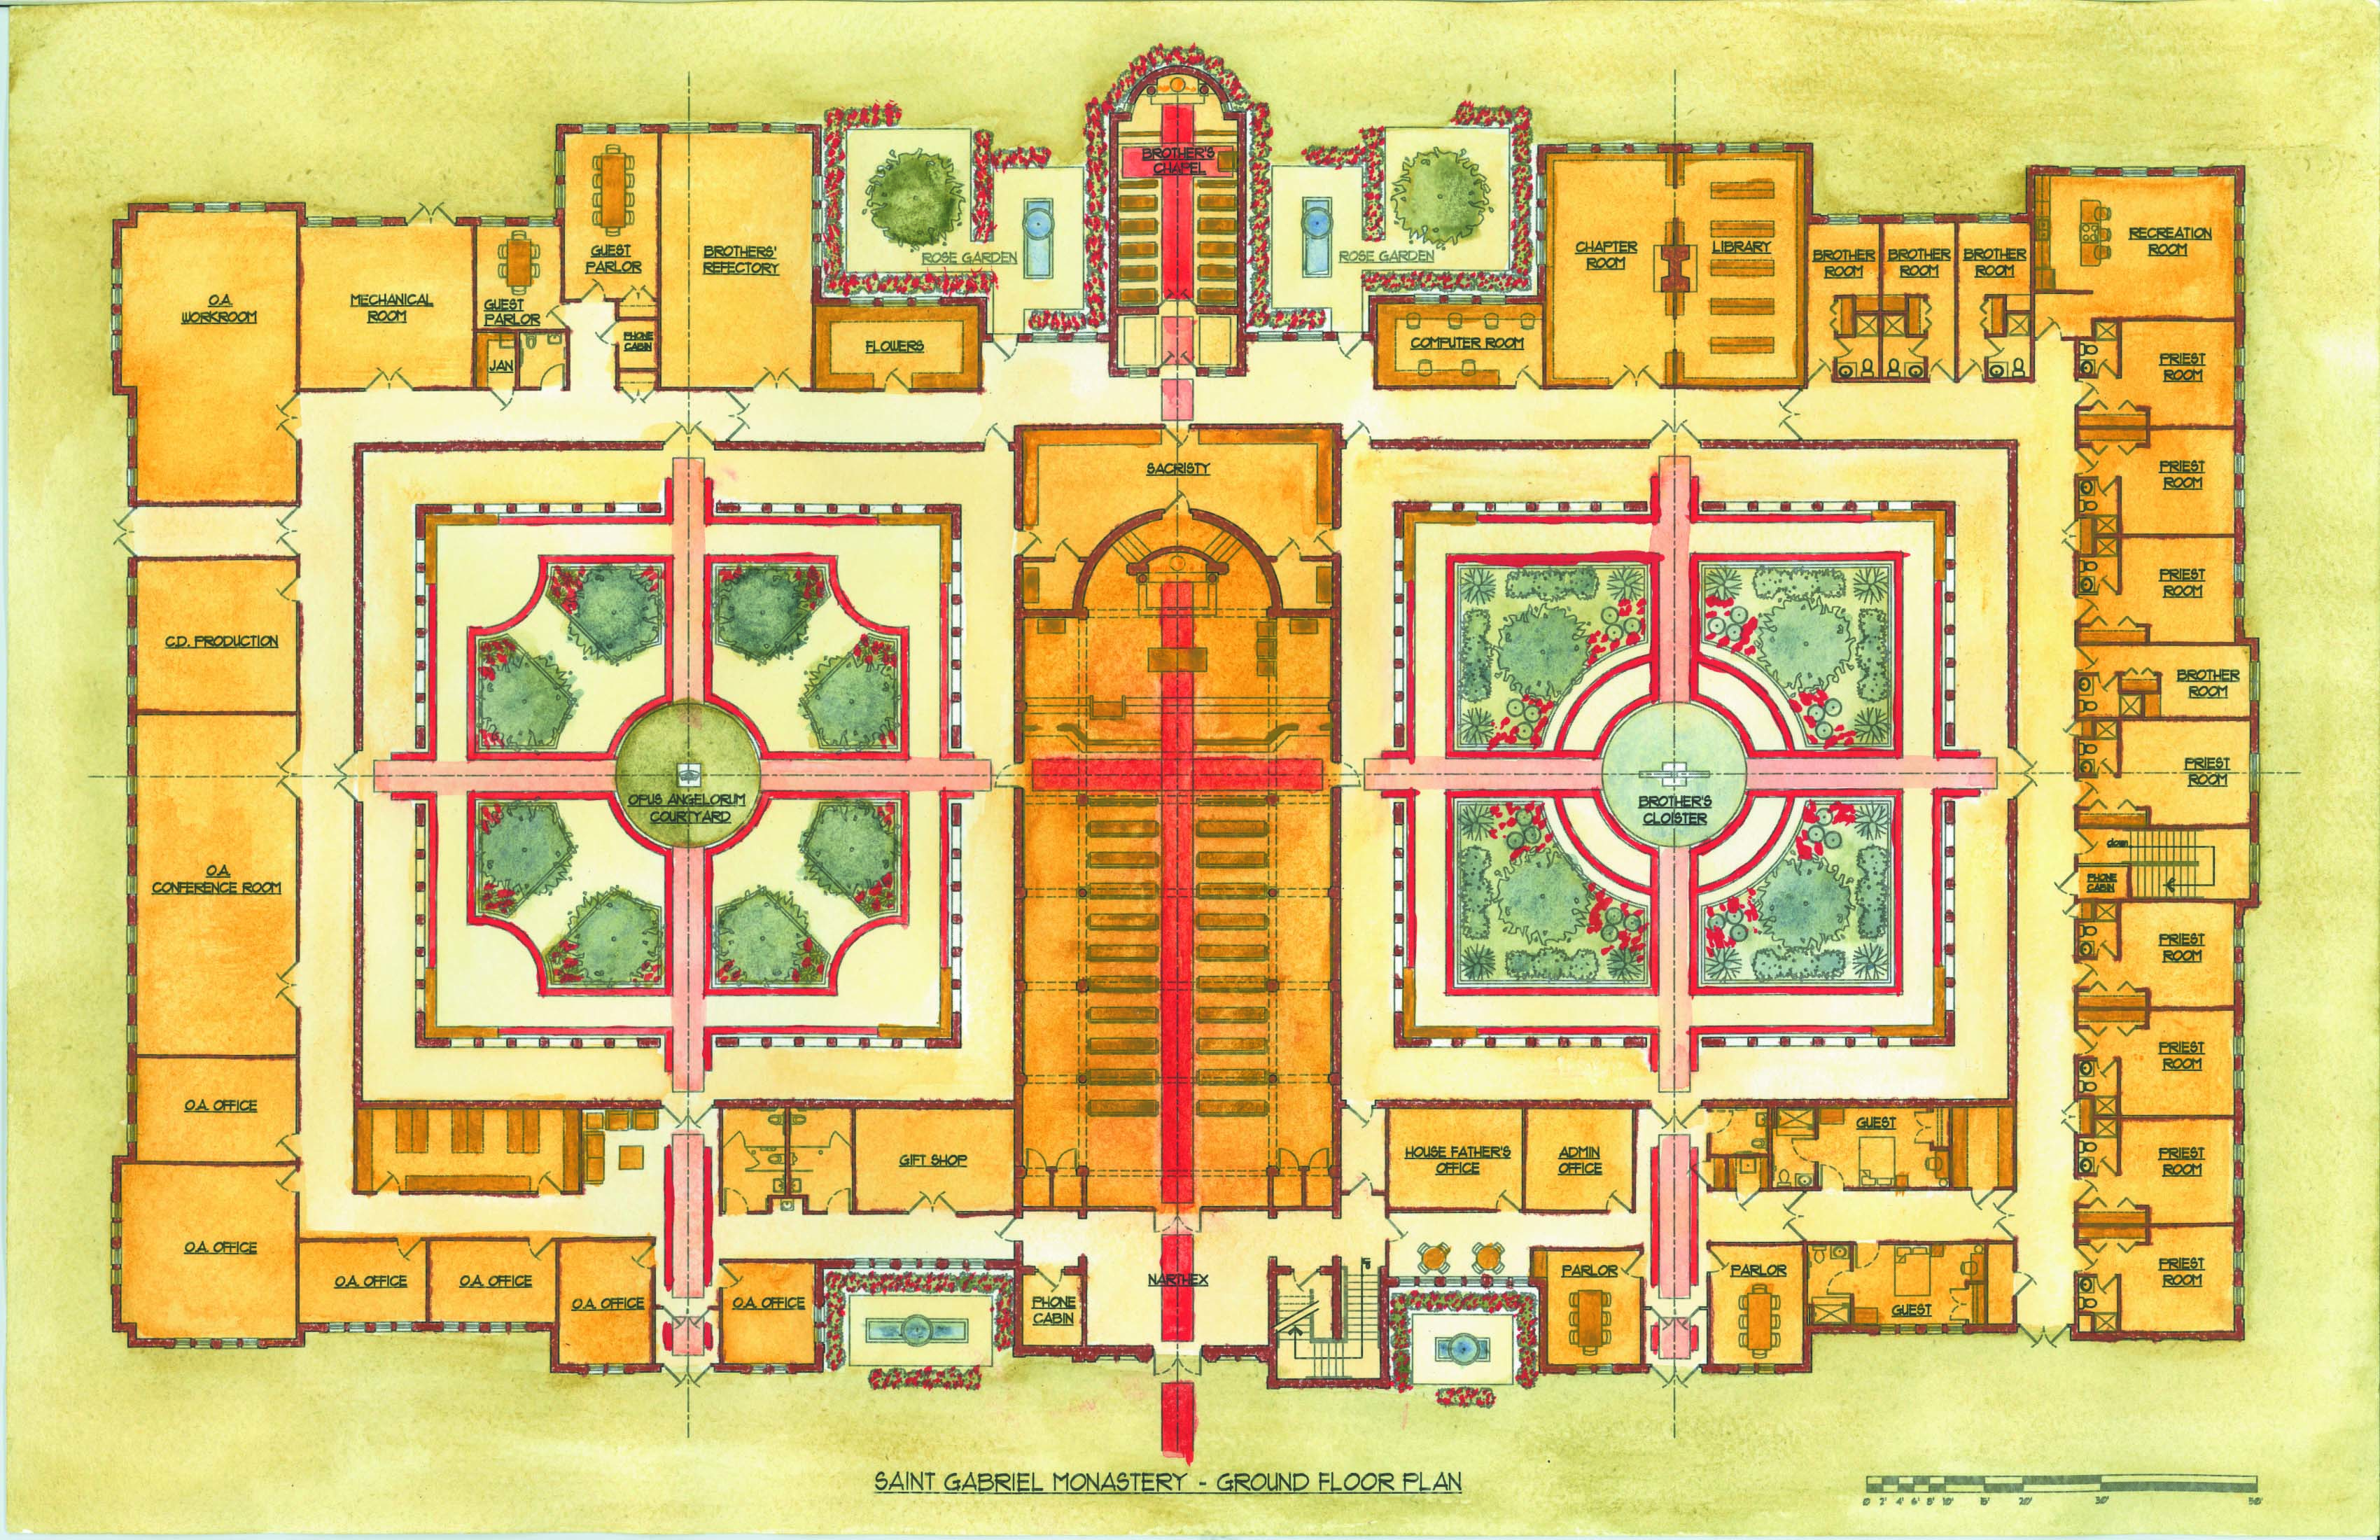 St. Gabriel Monastery - Watercolor Floor Plan